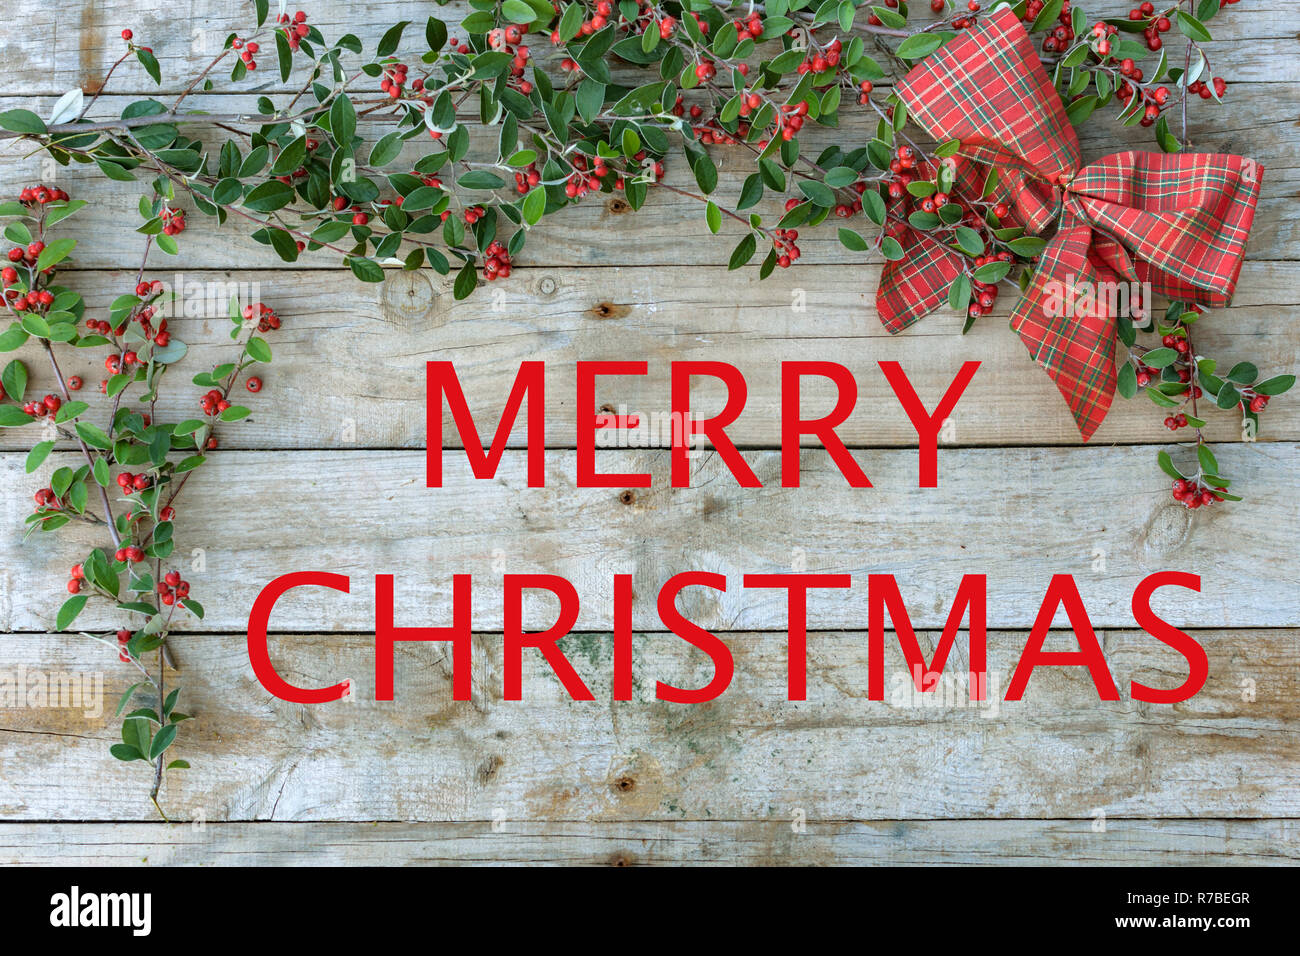 Christmas composition frame with green foliage with berries and a checked pattern red tie on wooden background. For Christmas greetings card. - Stock Image